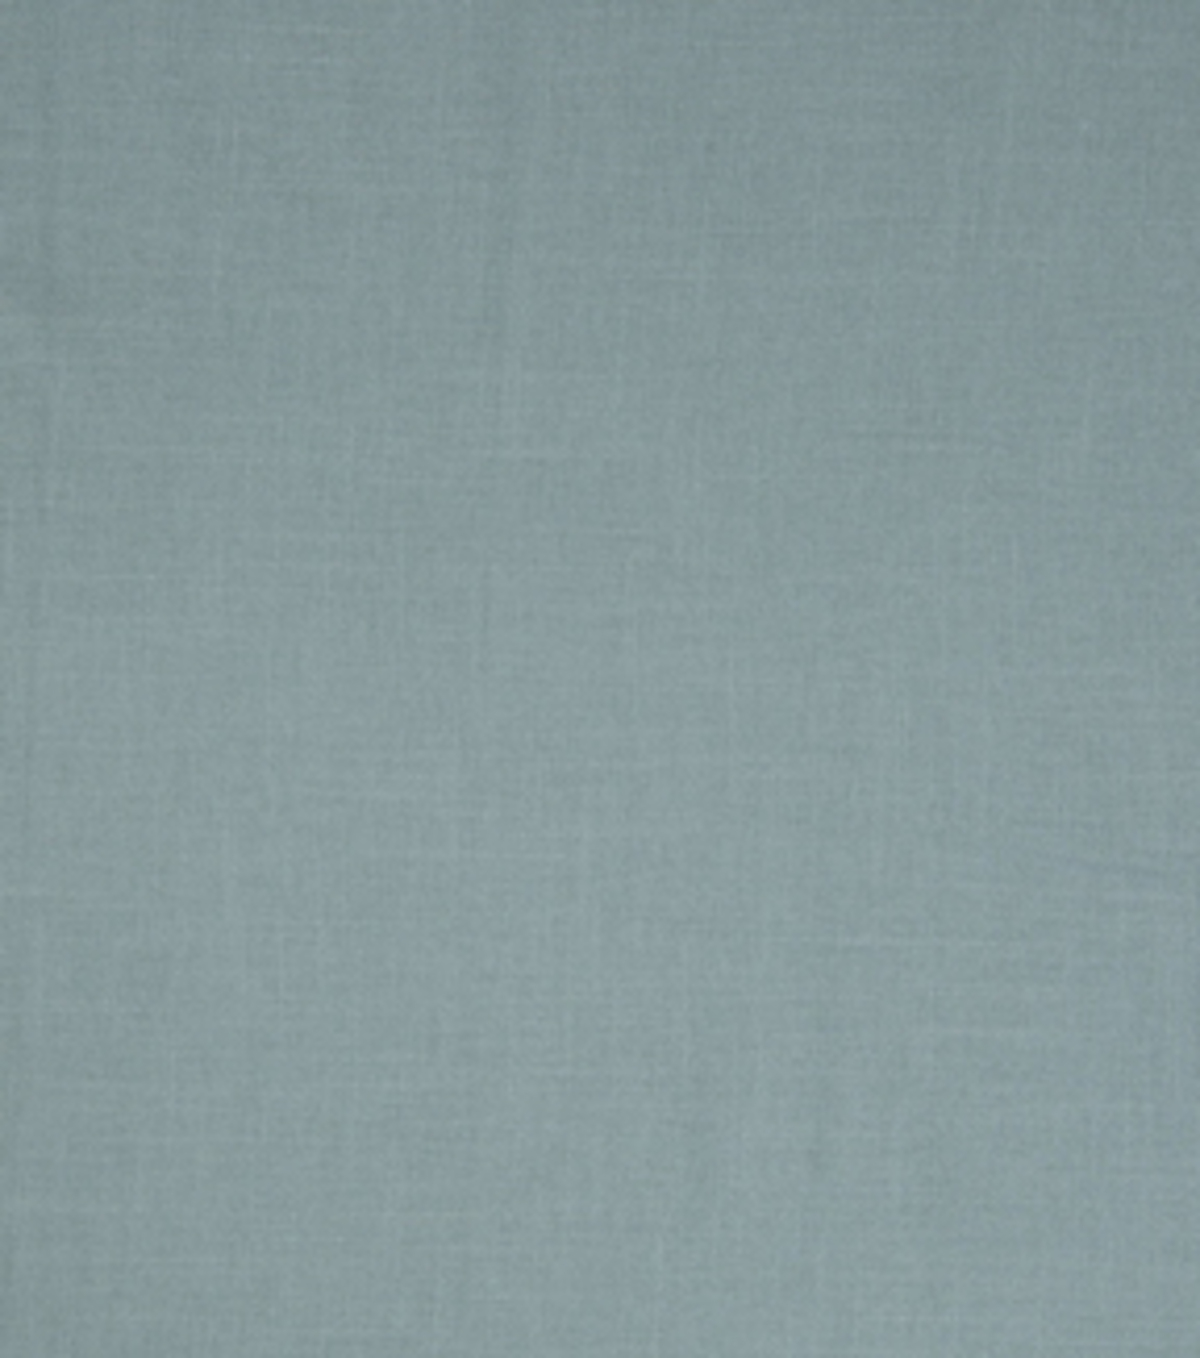 Home Decor 8\u0022x8\u0022 Fabric Swatch-French General  Career La Mer